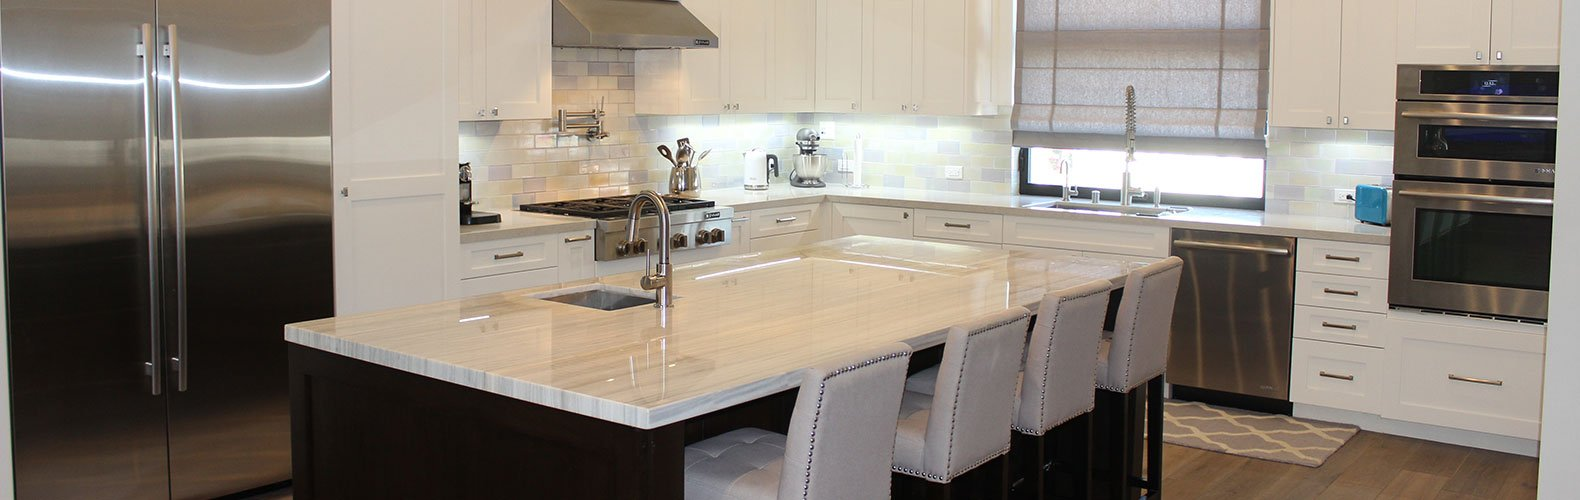 Los Angeles Kitchen Remodeling